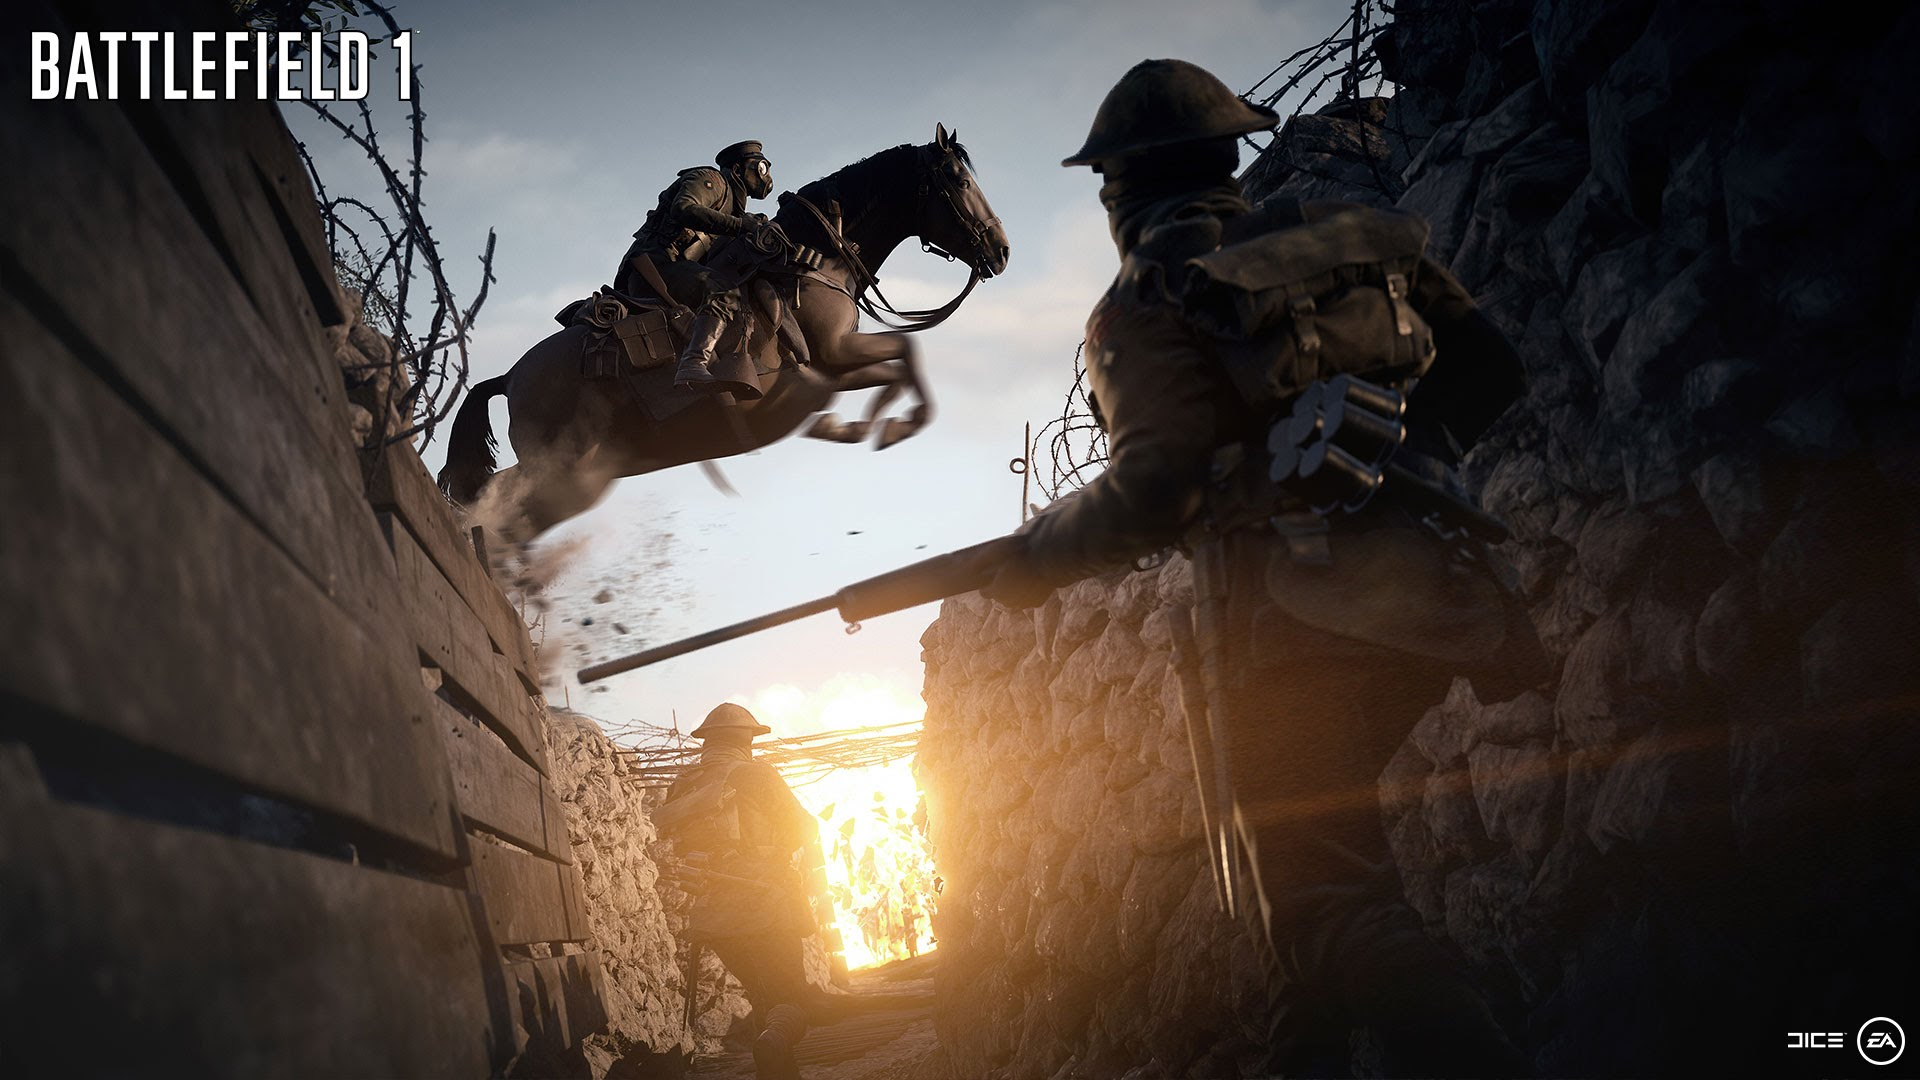 Battlefield 1 beta to begin in August?